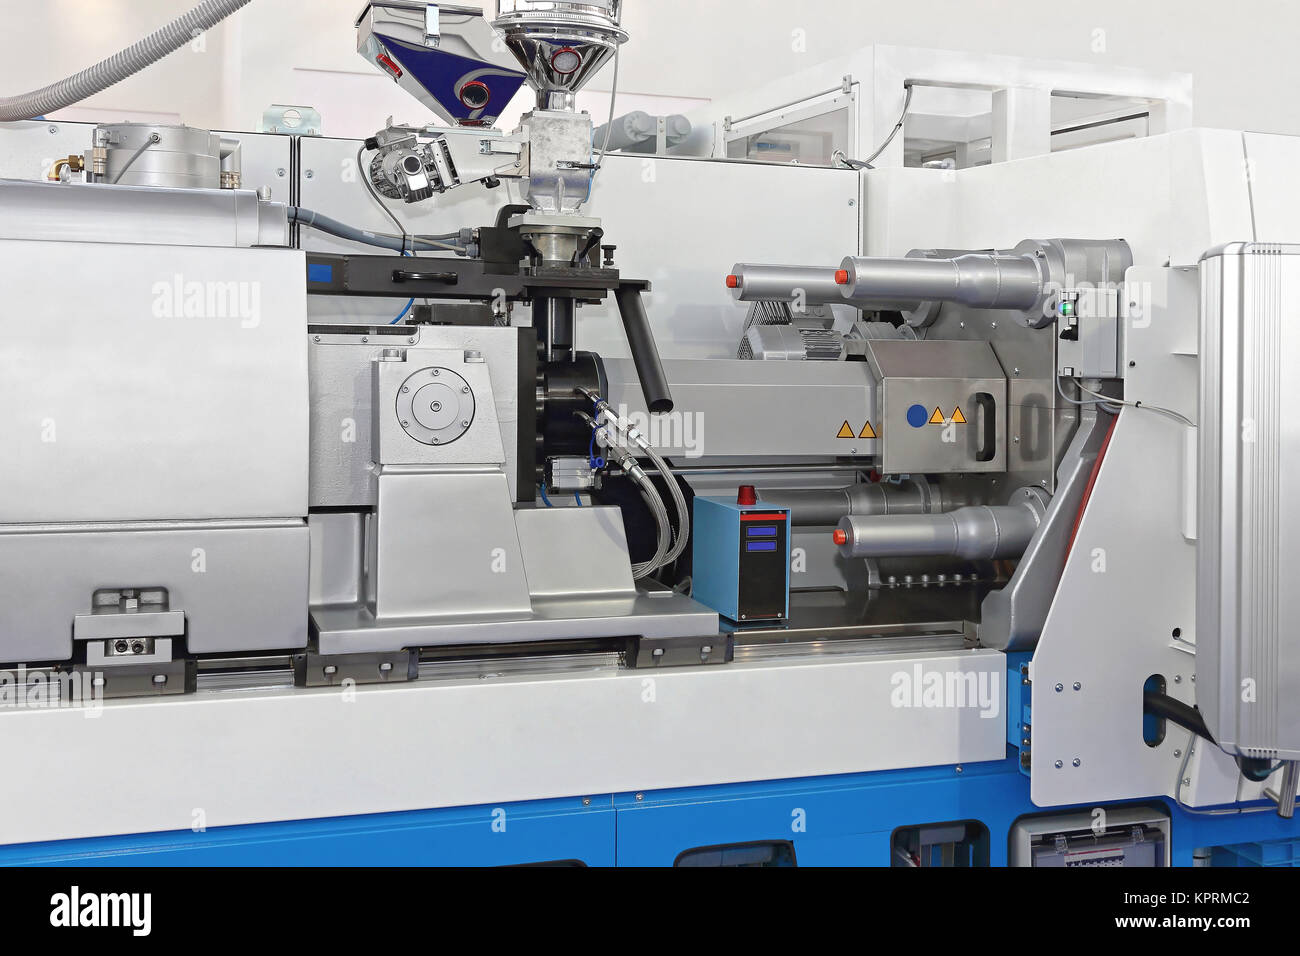 Injection Molding Machine - Stock Image